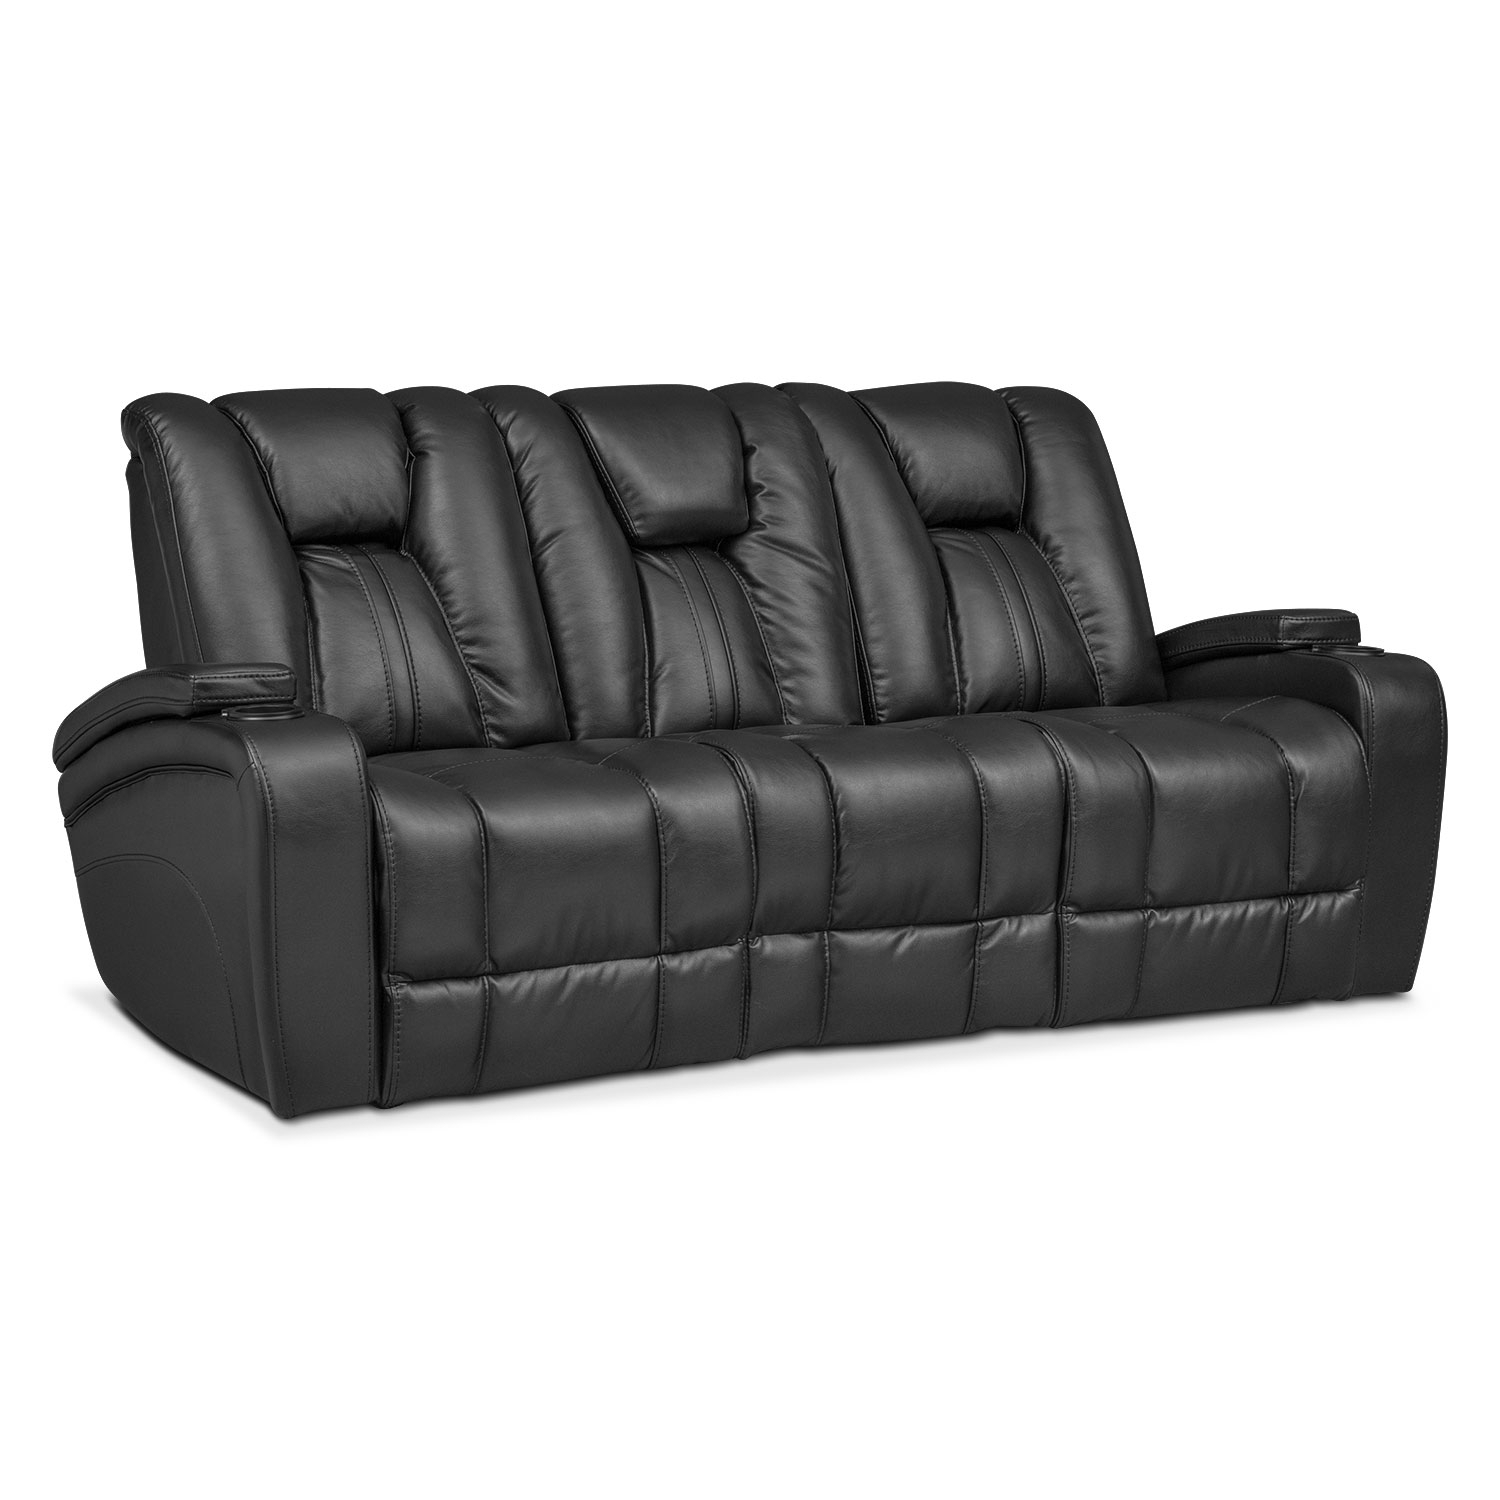 Sofas And Couches | Living Room Seating | Value City Furniture And intended for Aquarius Dark Grey 2 Piece Sectionals With Raf Chaise (Image 28 of 30)